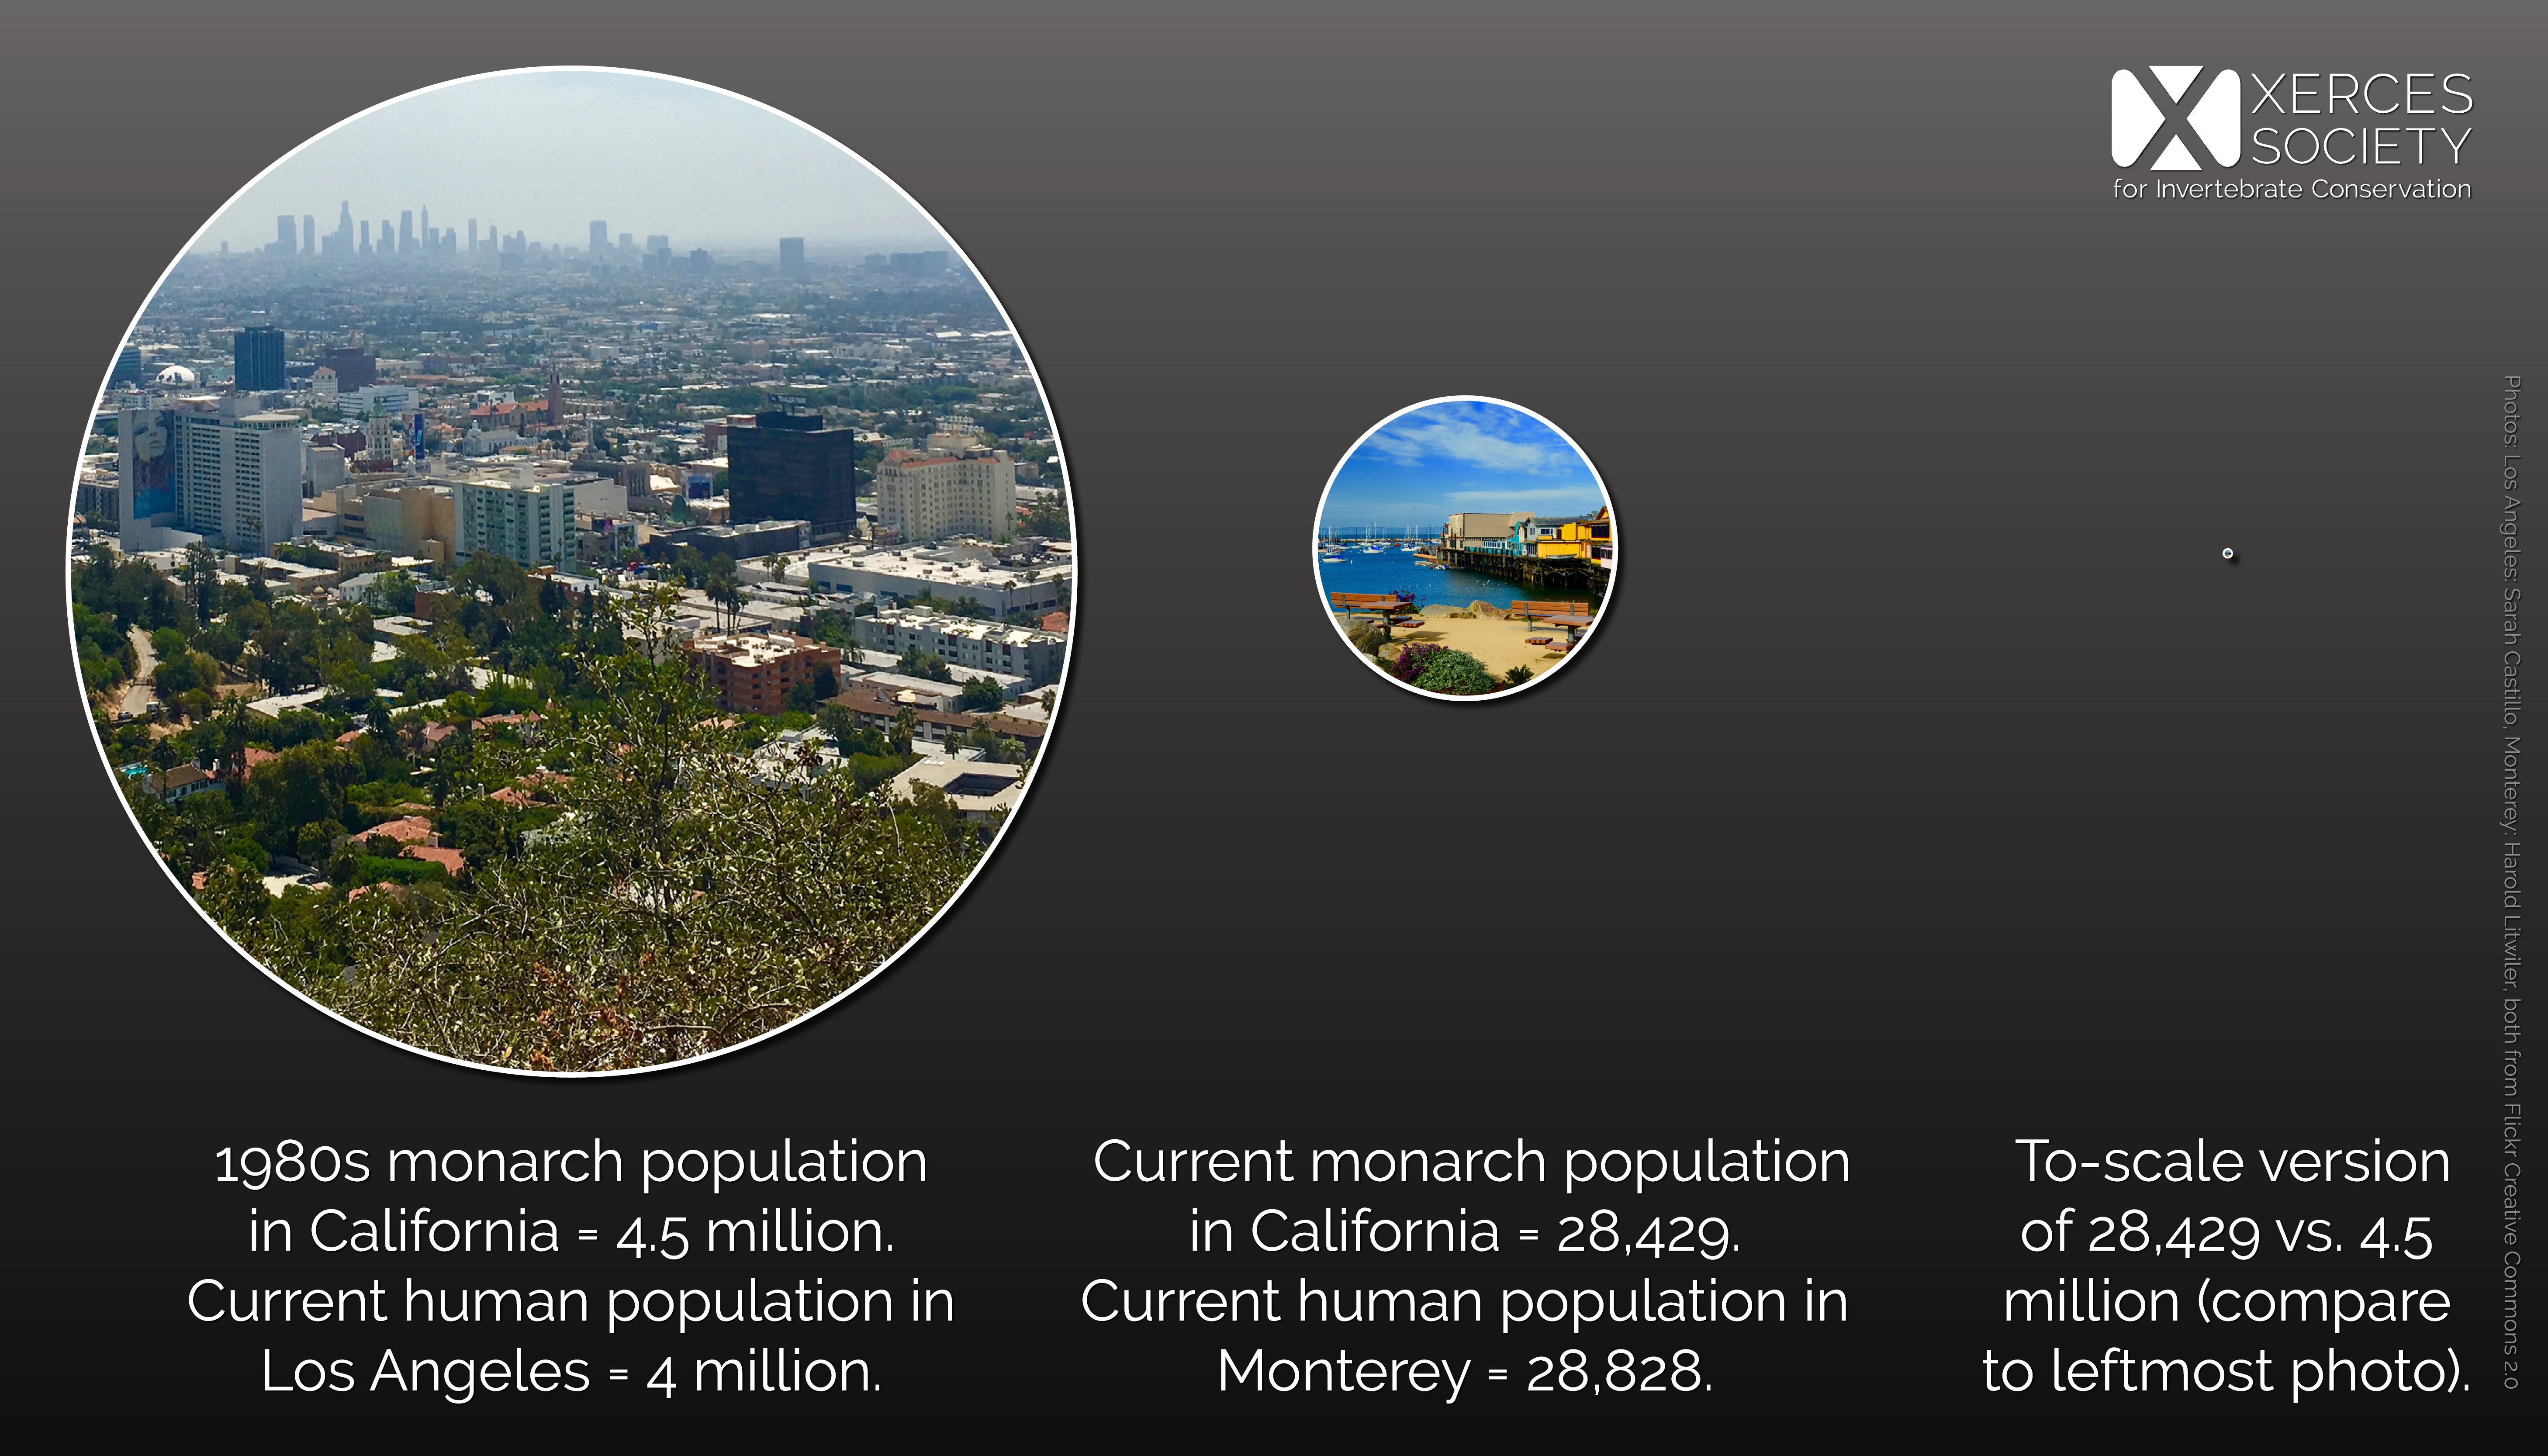 A graphic shows the relative size of Los Angeles' human population compared to Monterey's, and points out that the decline from the western monarch population's historic levels to today's overwintering population is of a comparable magnitude.